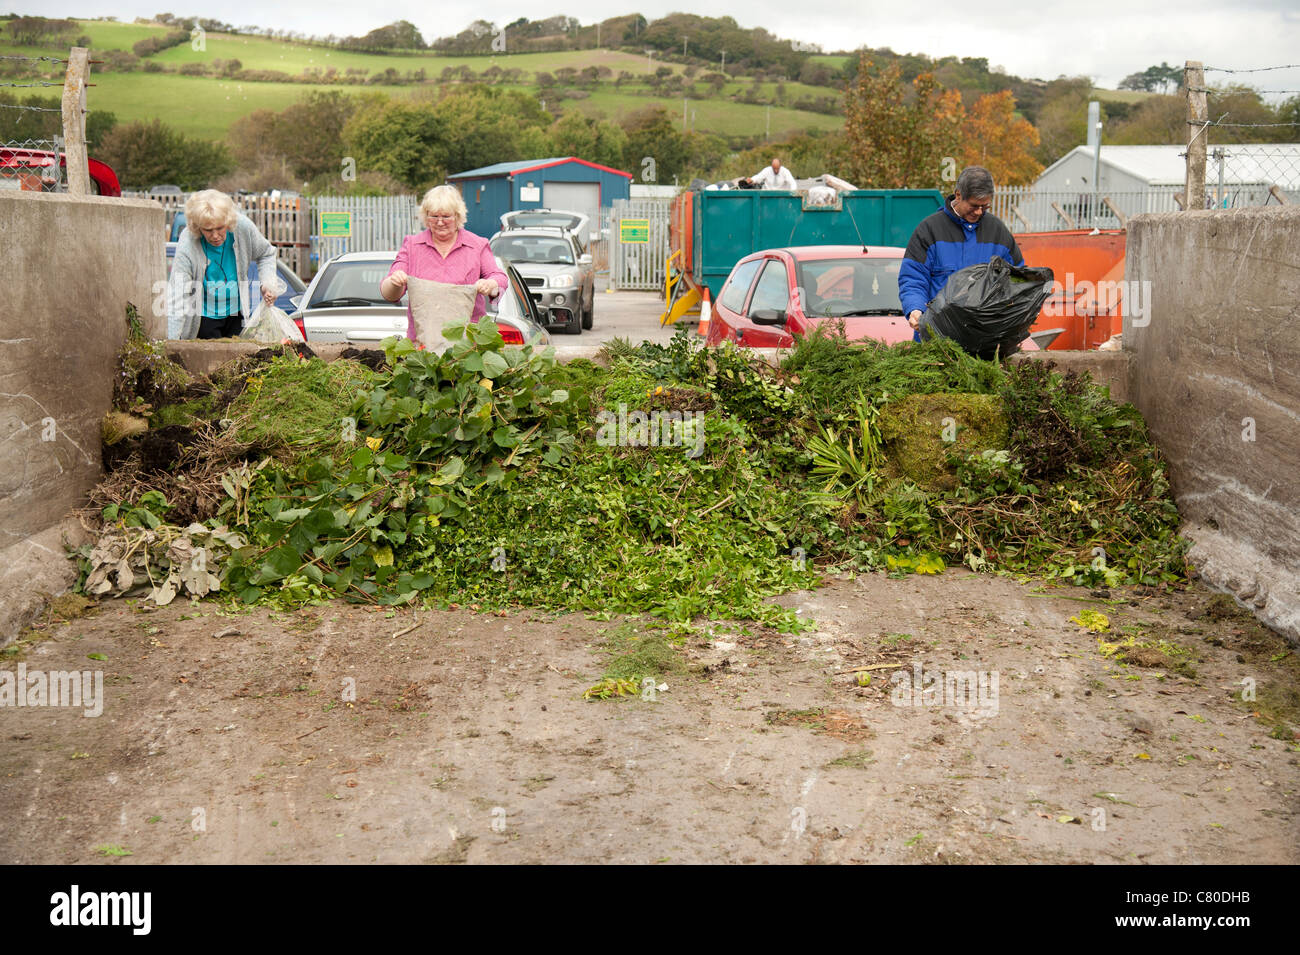 People dumping sacks of green garden waste at a recycling centre UK - Stock Image